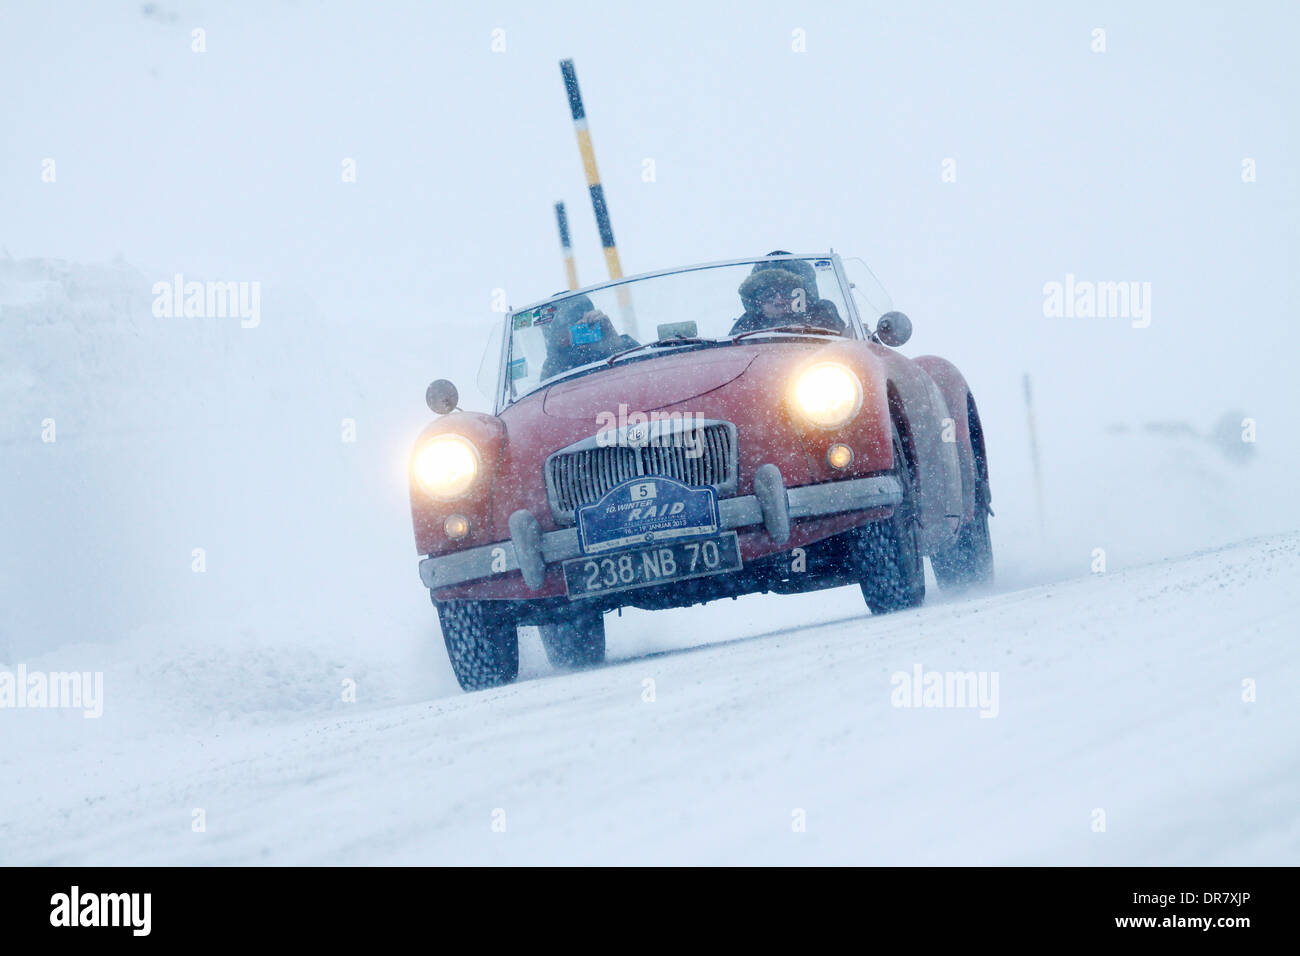 Vintage car rally, WinterRAID 2013, MG A 1500, built in 1956, Bernina Pass, St. Moritz, Engadin, Switzerland - Stock Image